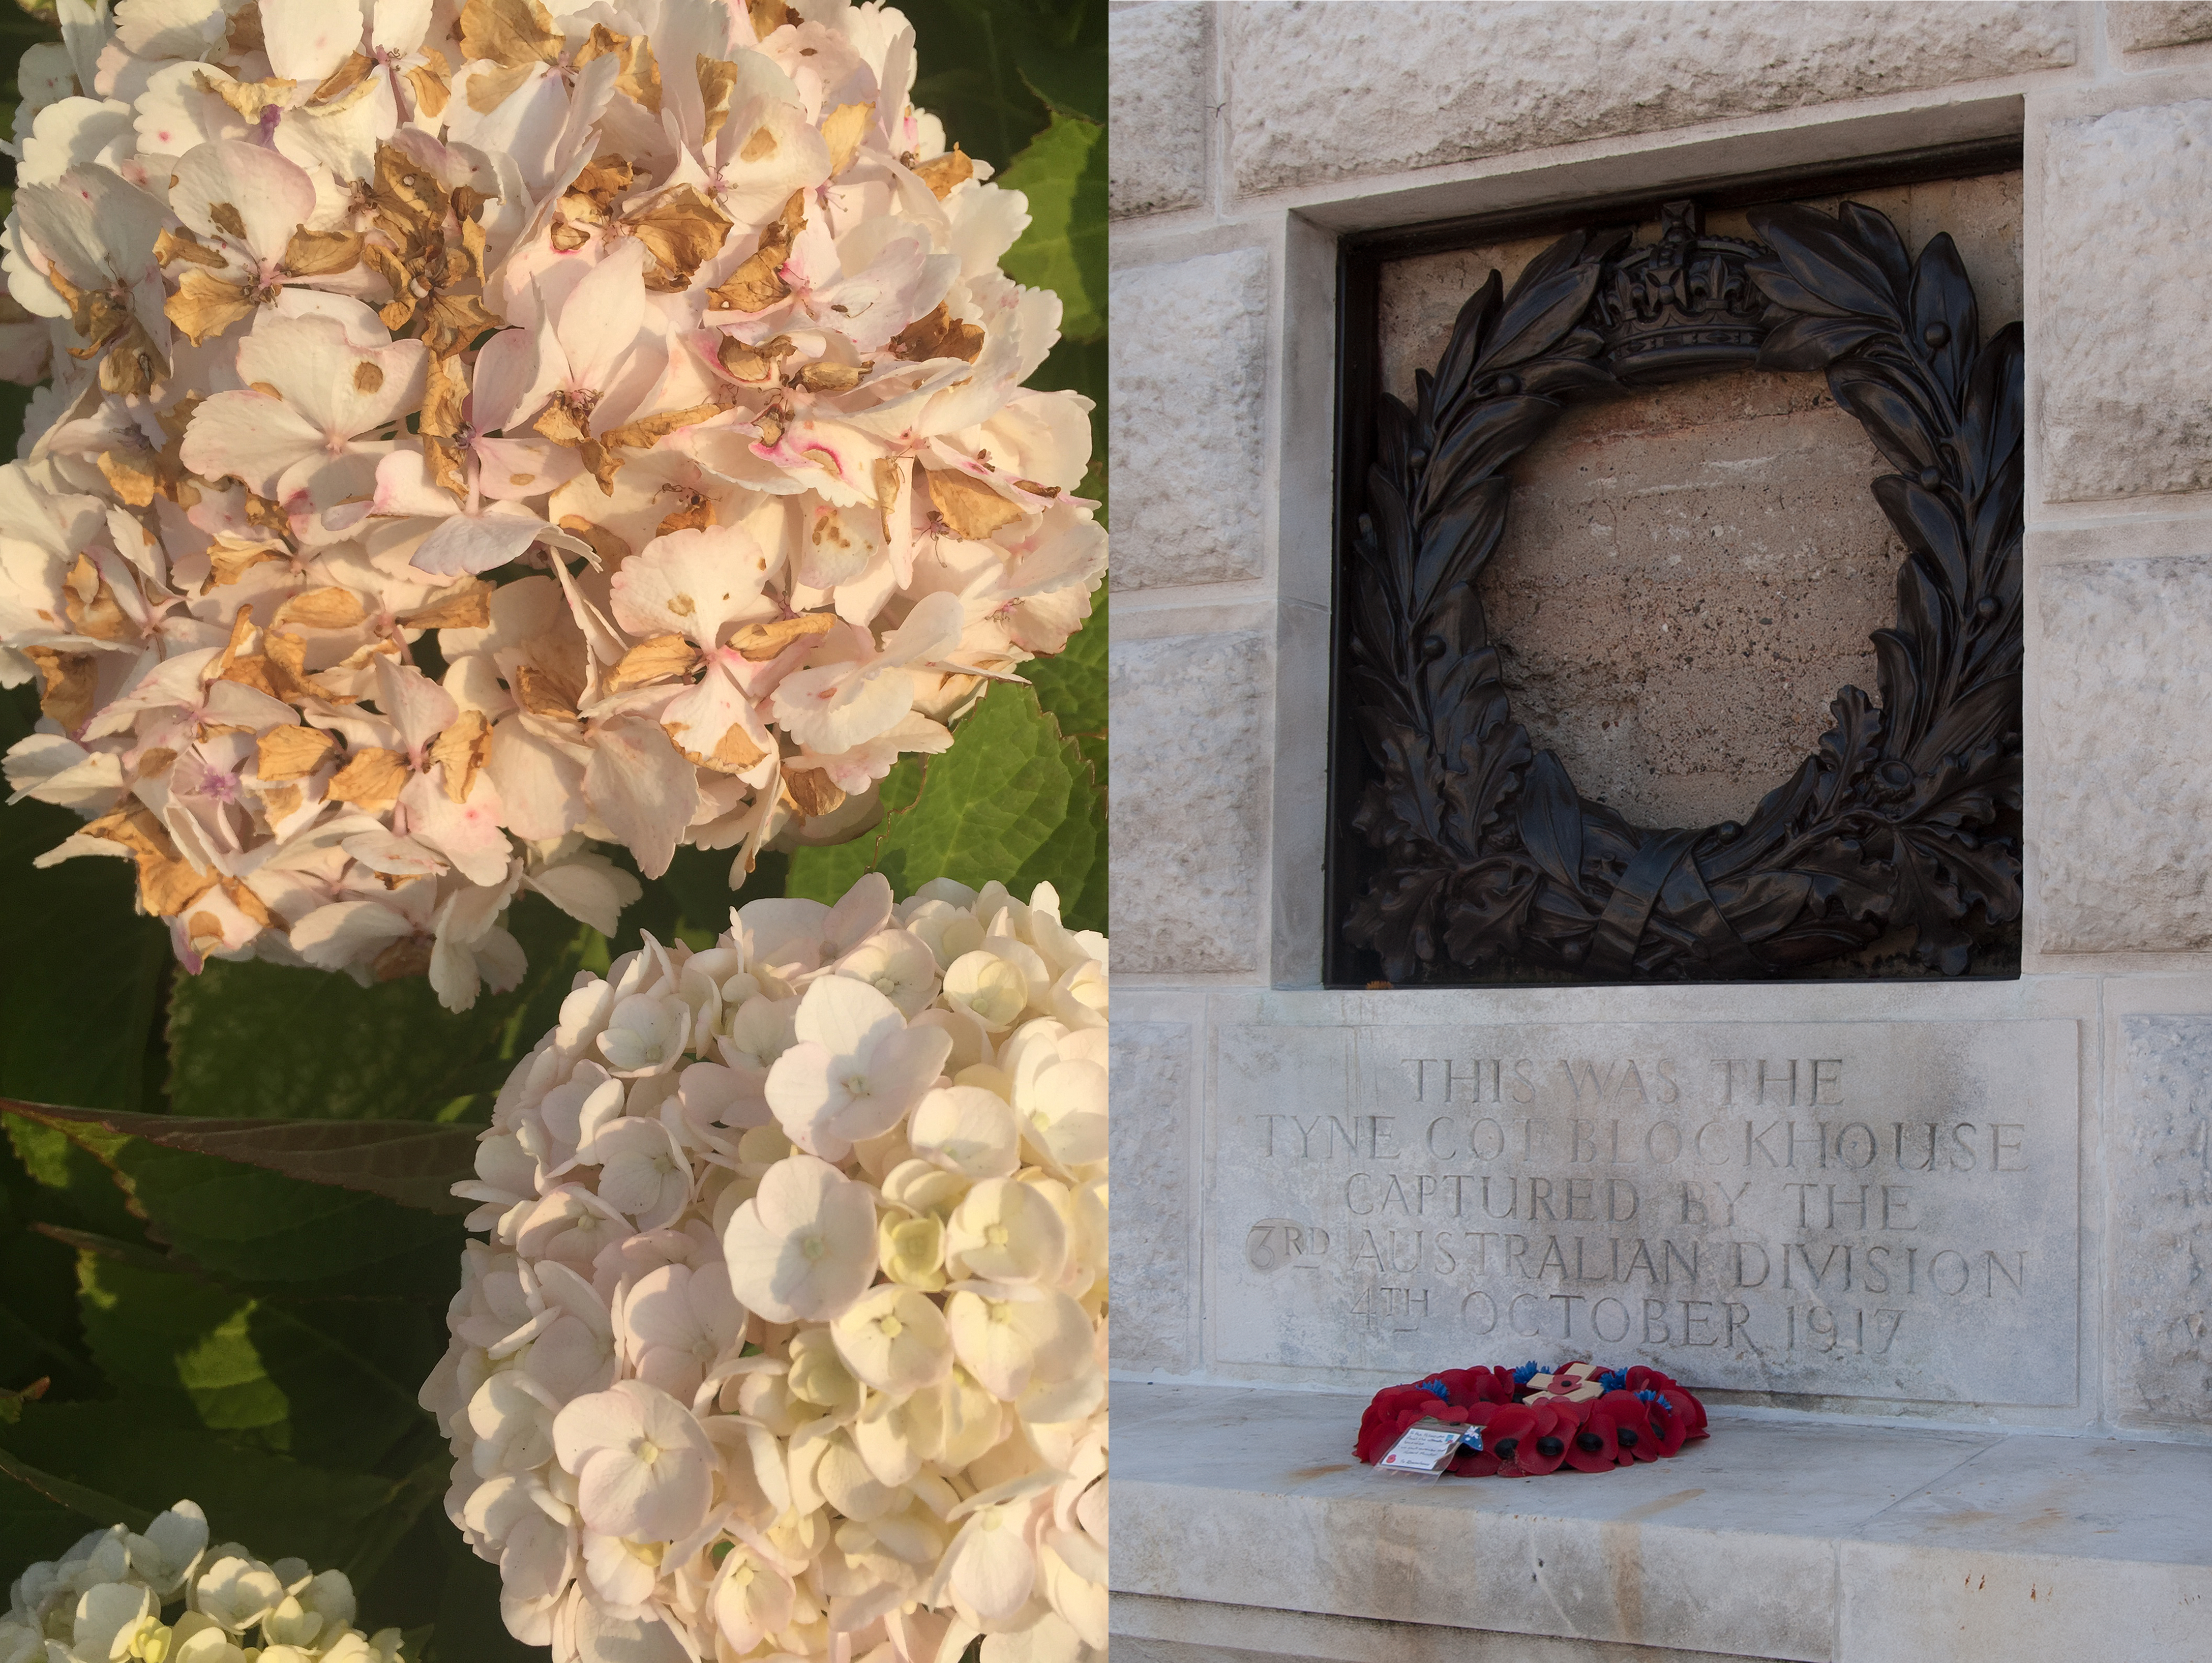 12 Searching for the Menin Gate (Flowers:Tyne Cott)